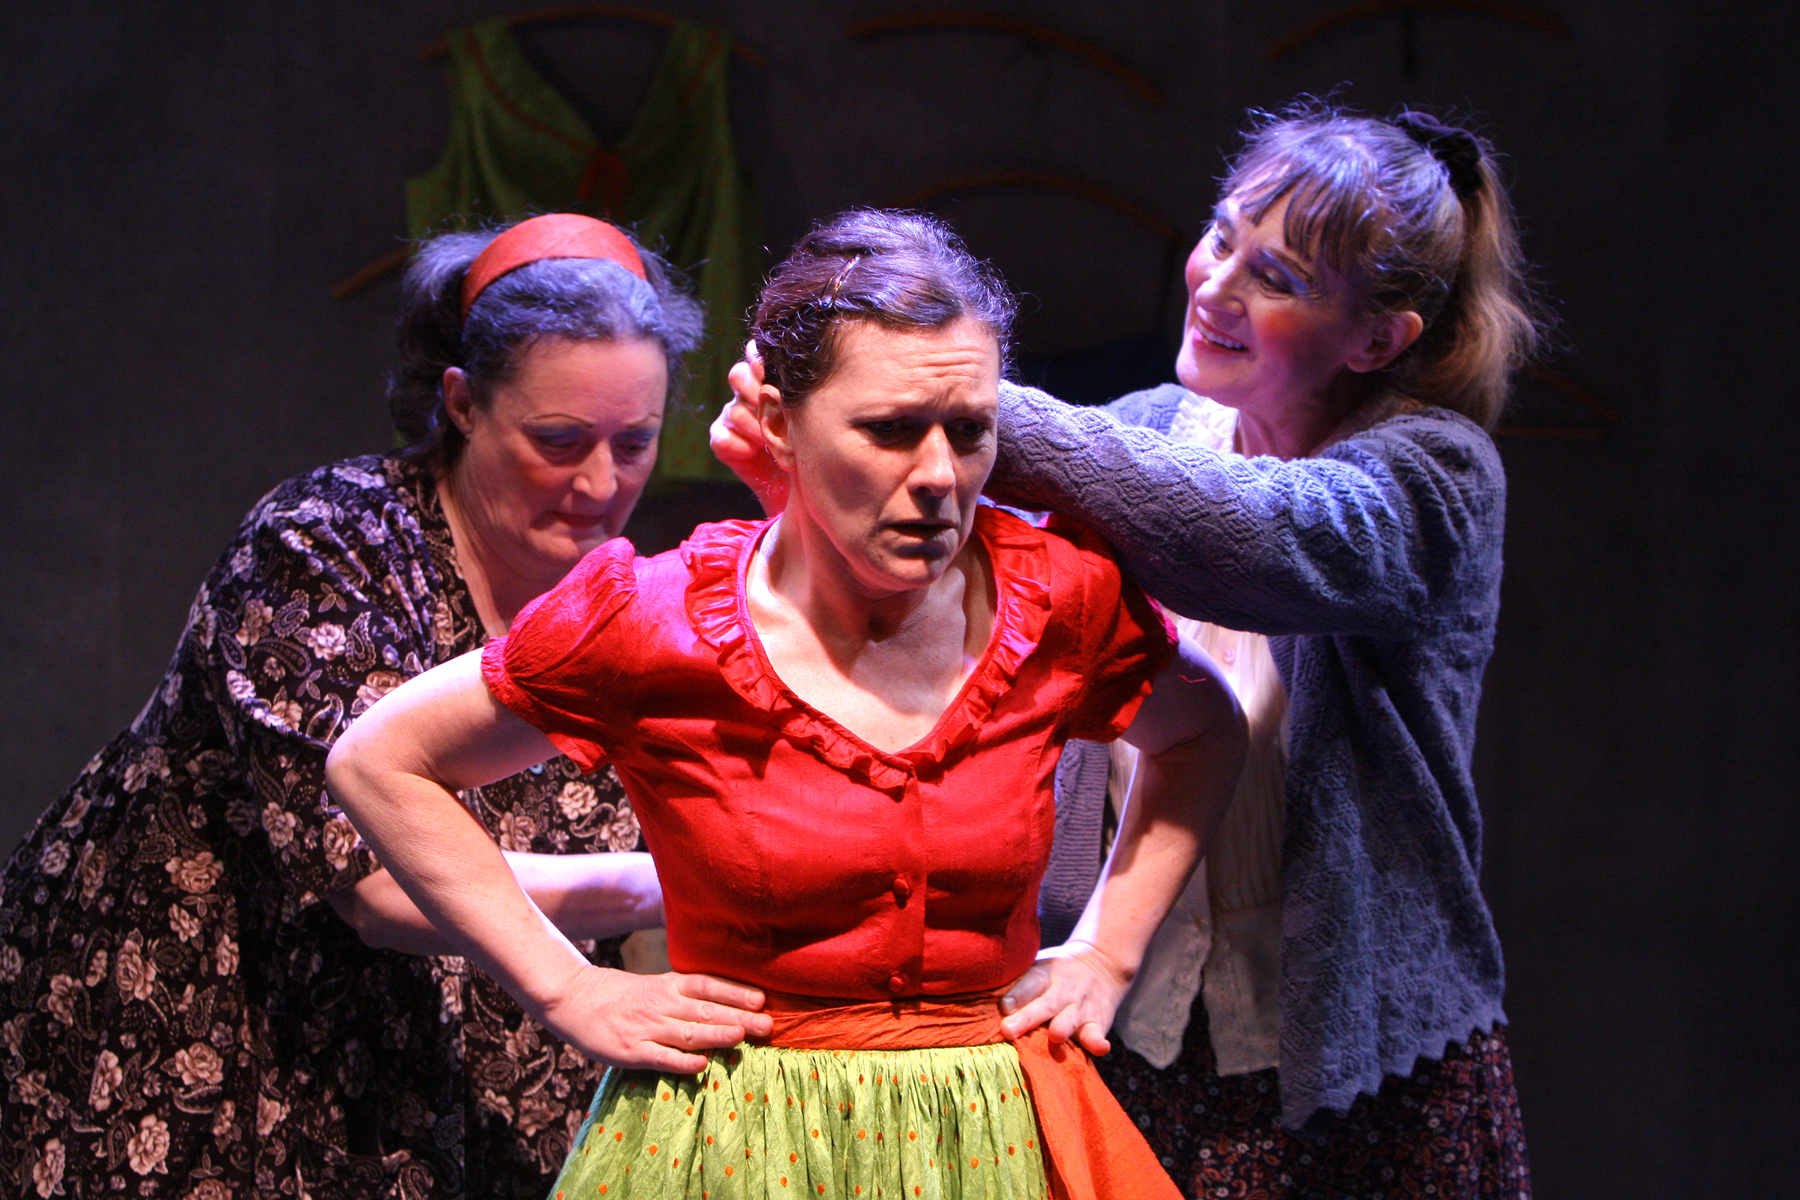 (l to r) Nancy Robinette, Jennifer Mendenhall, and Sybil Lines in The New Electric Ballroom by Enda Walsh. Directed by Matt Torney. Photo: Carol Pratt.